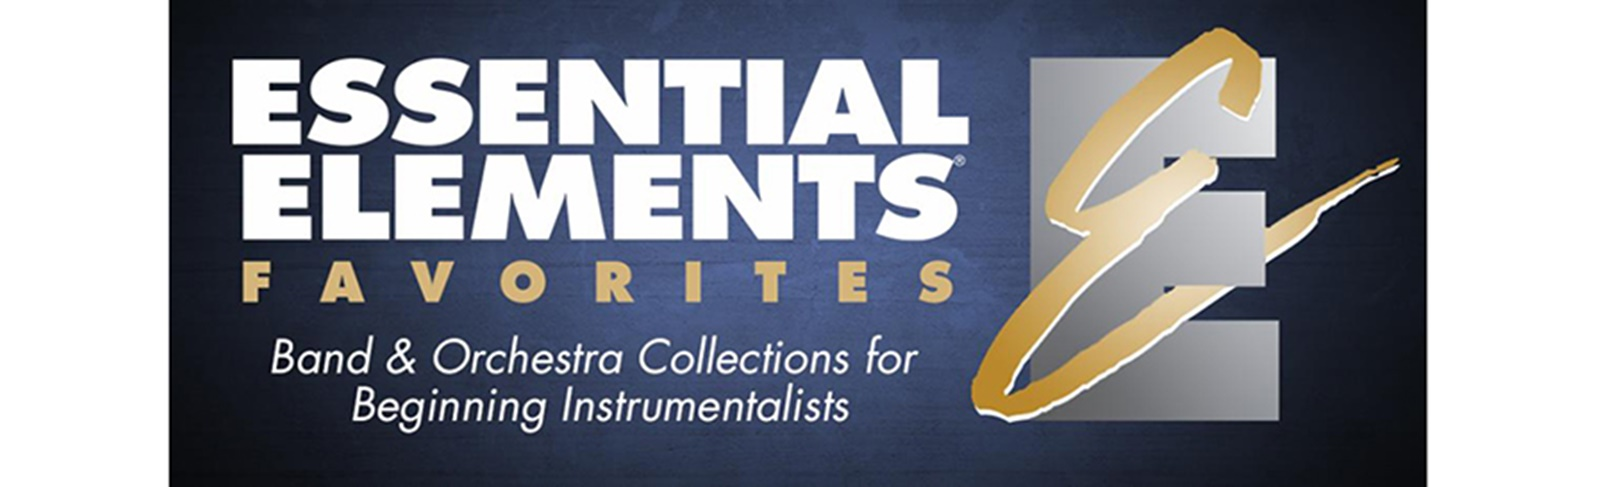 Essential Elements Favorites